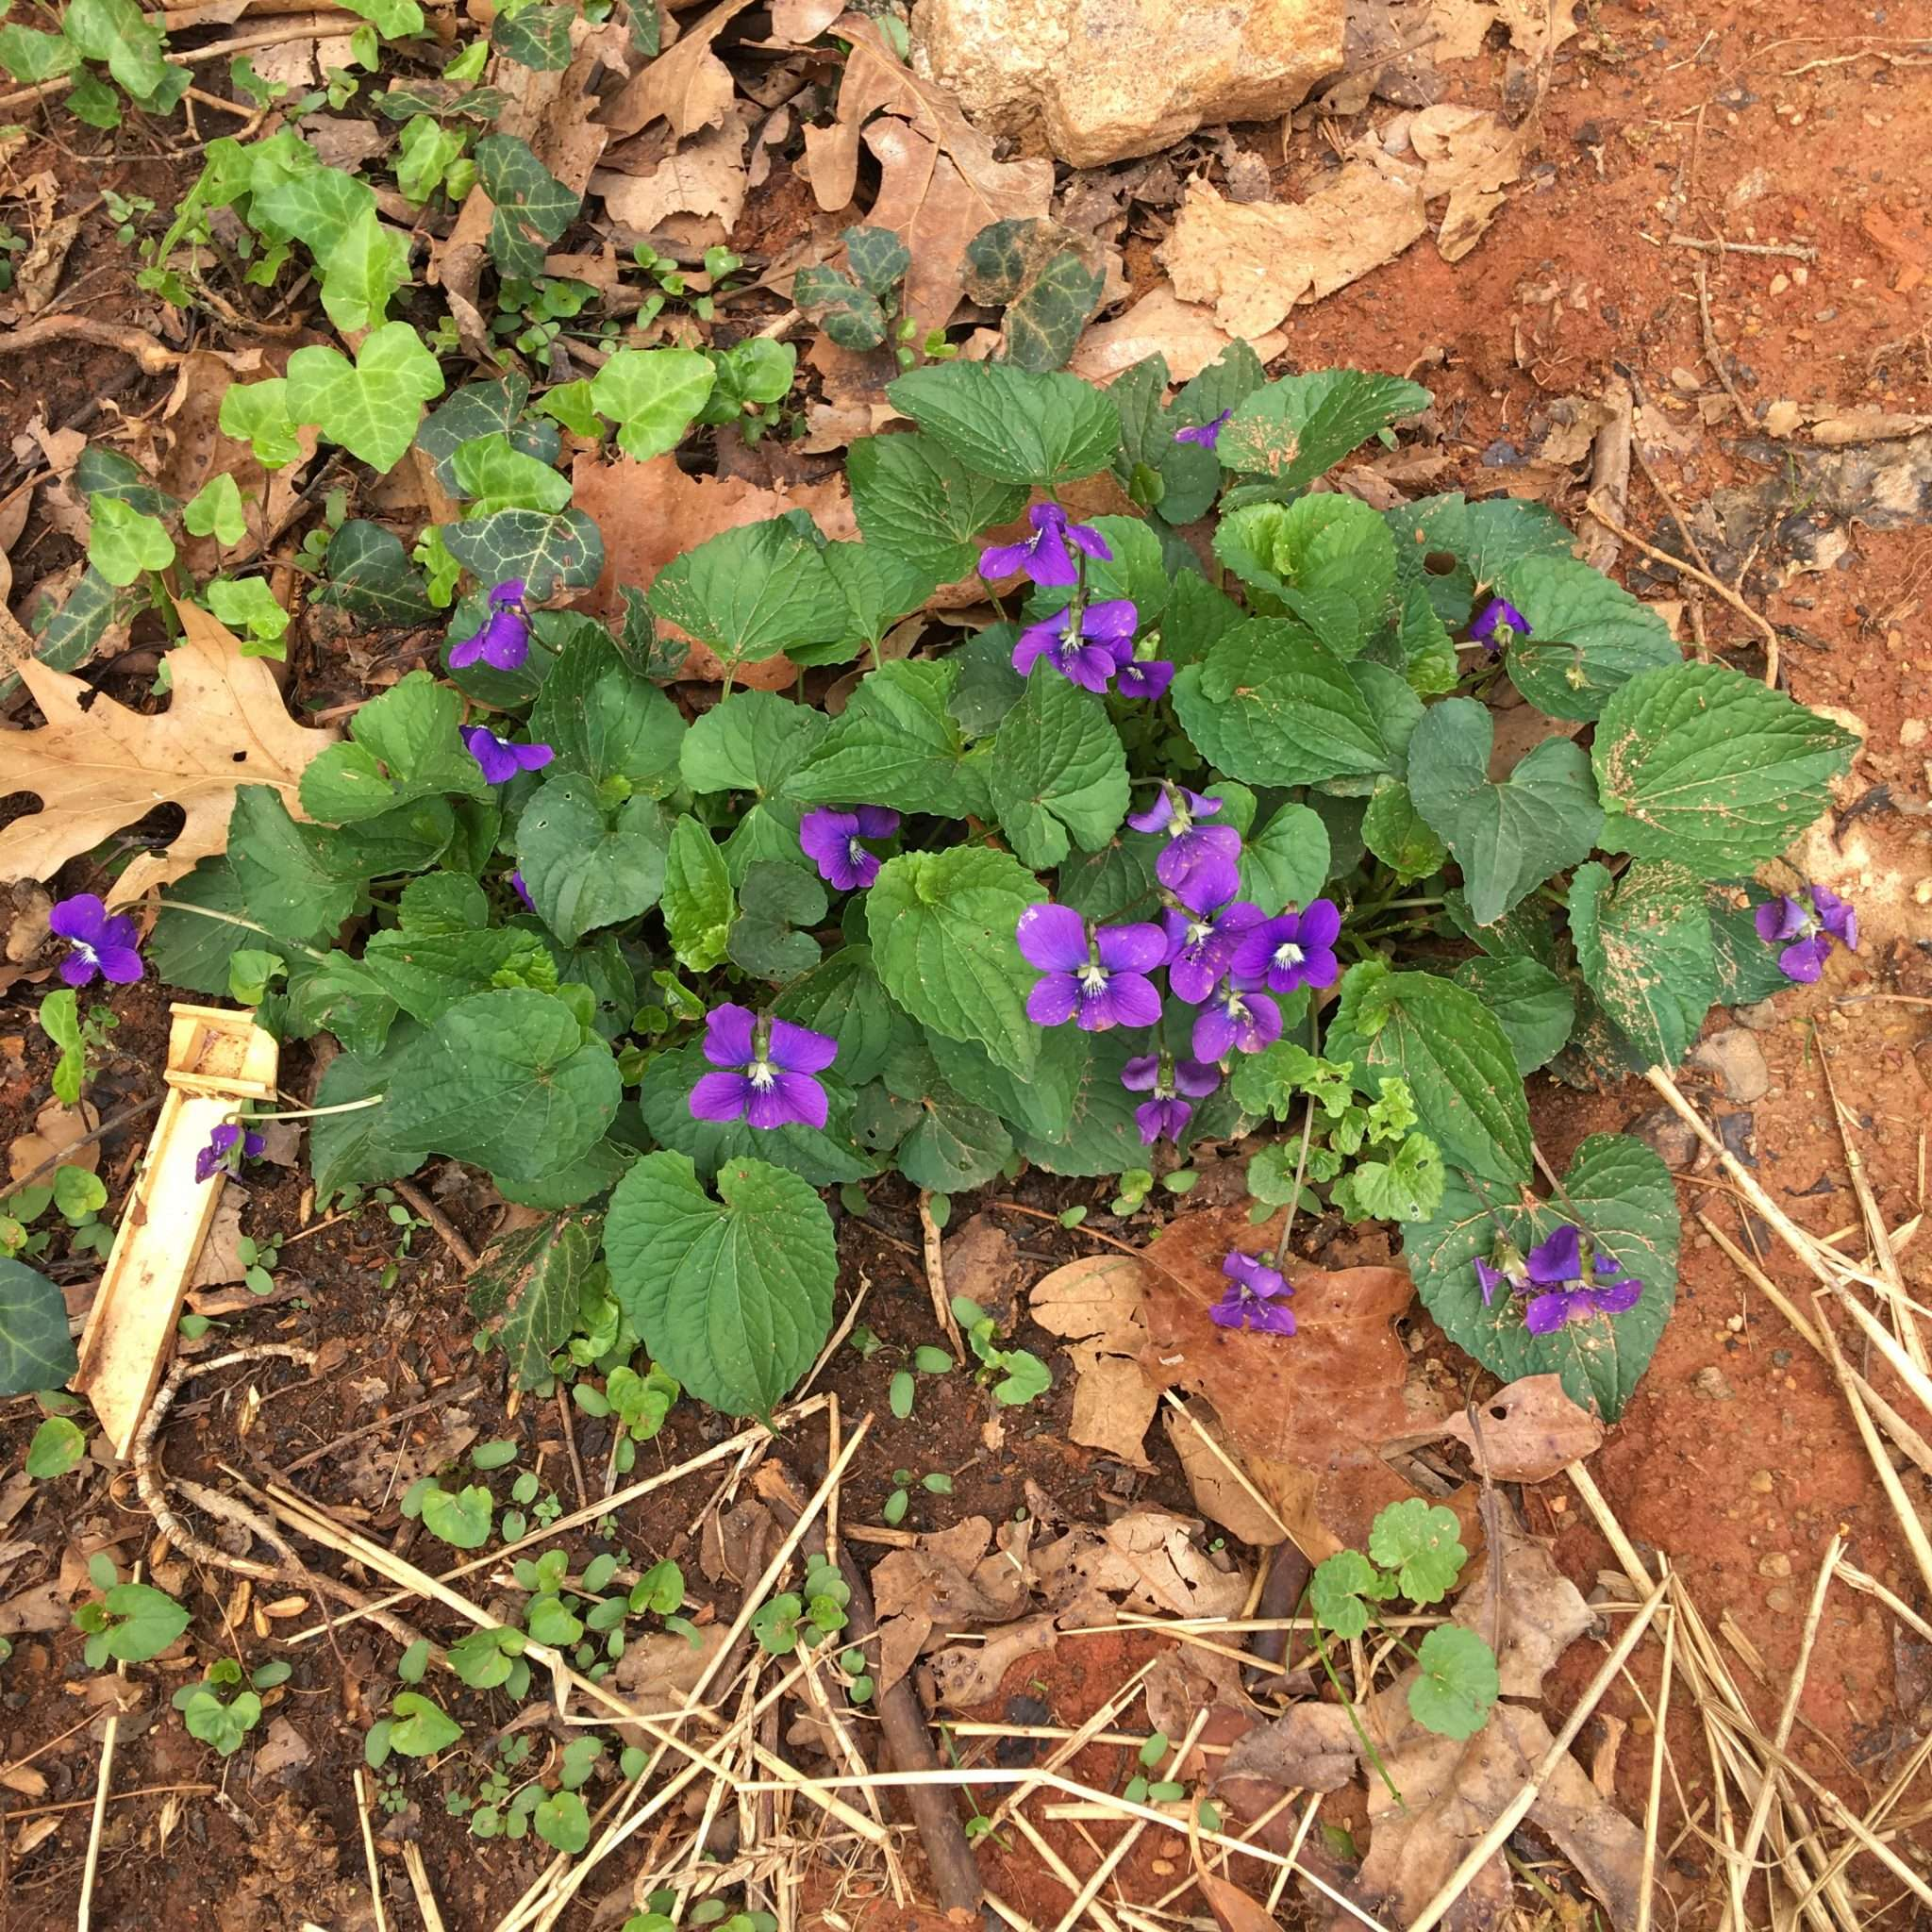 spring violets blooming in barren red clay